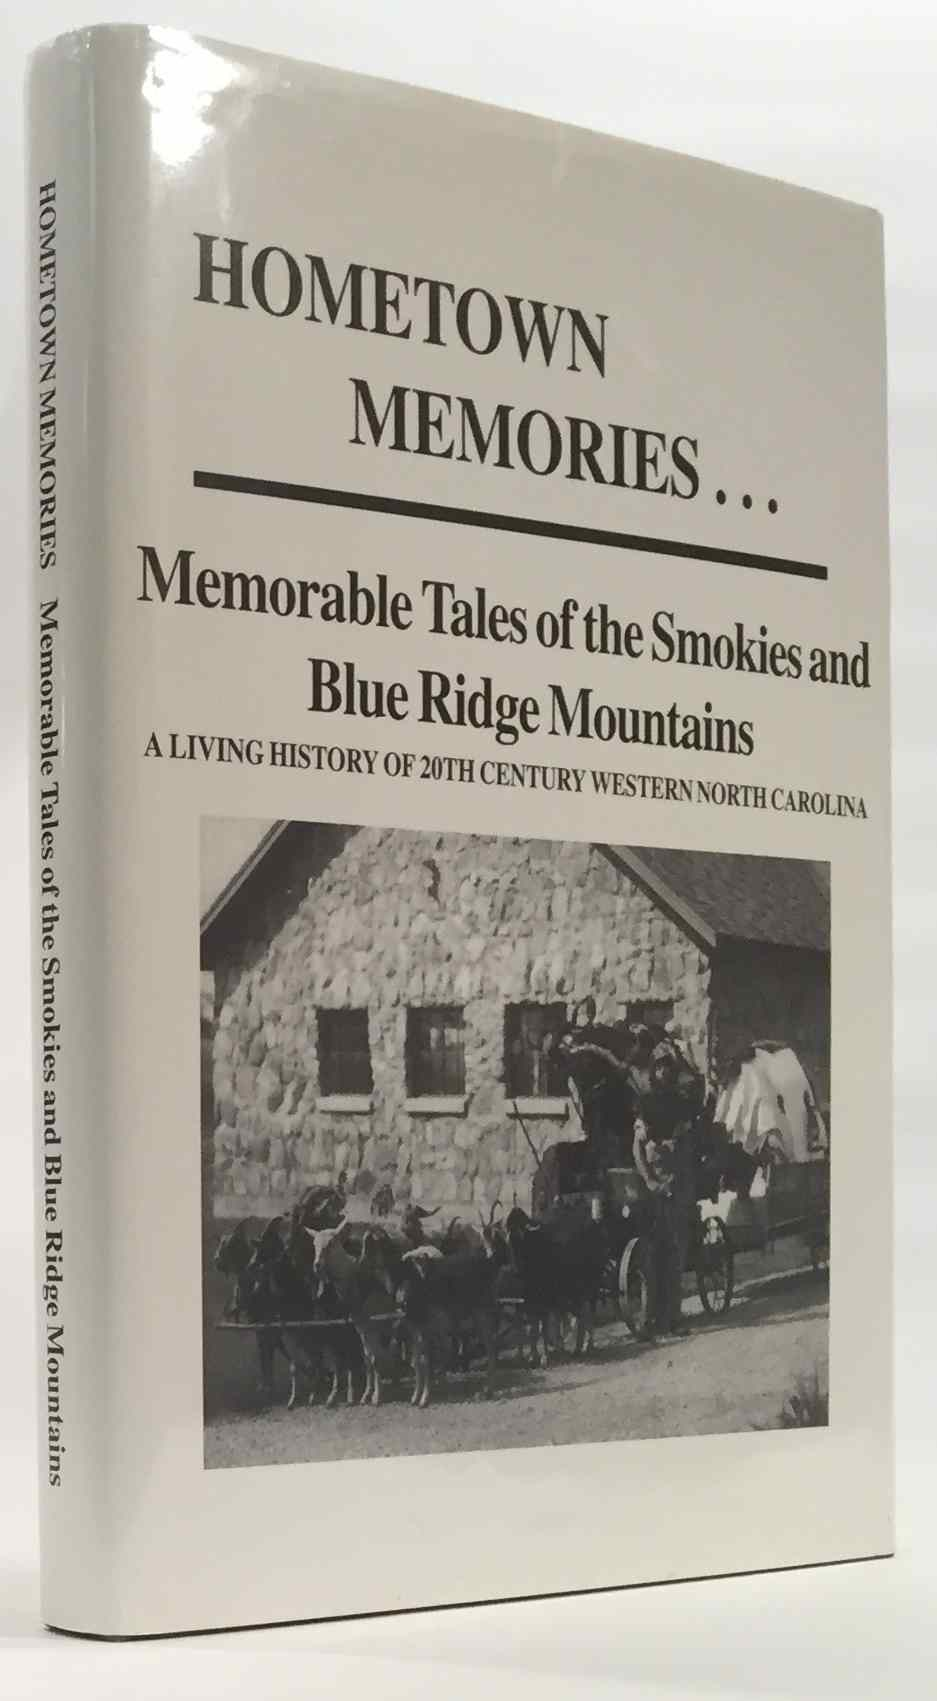 Image for Hometown Memories... Memorable Tales of the Smokies and Blue Ridge Mountains A Living History of 20th Century Western North Carolina